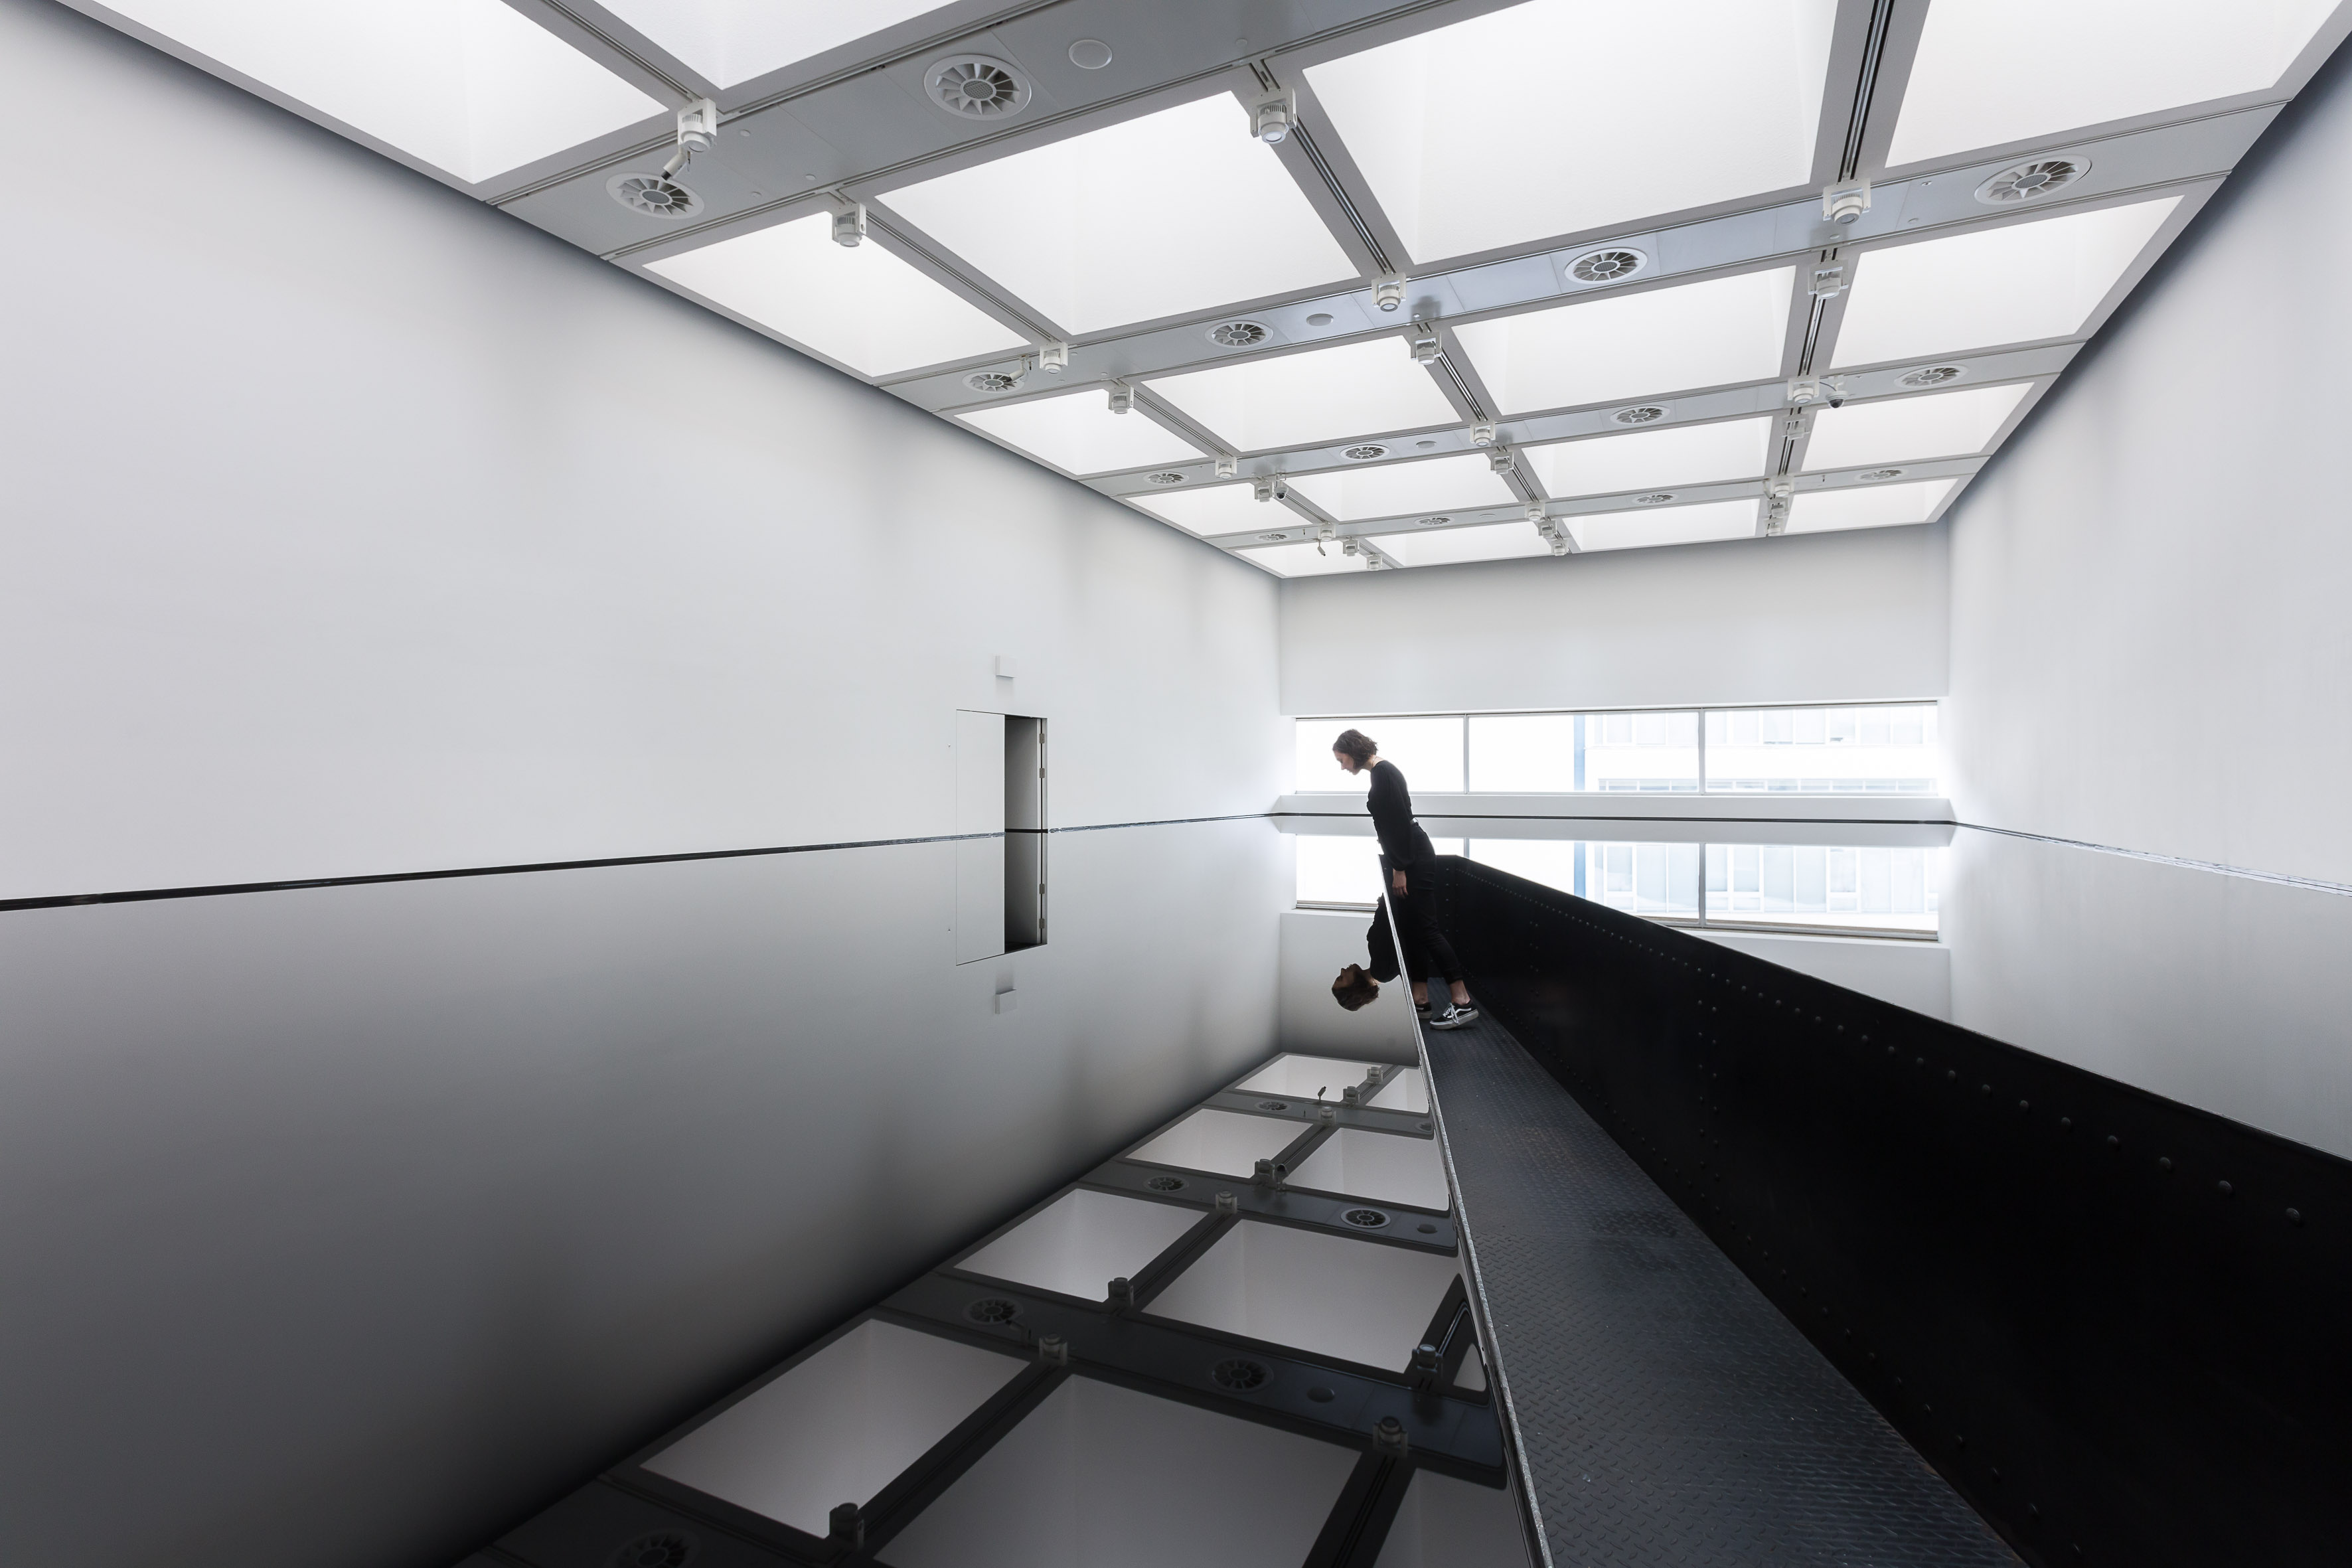 Installation view of Richard Wilson's 20:50 (1987) at Space Shifters, Hayward Gallery 2018. Photo: Mark Blower